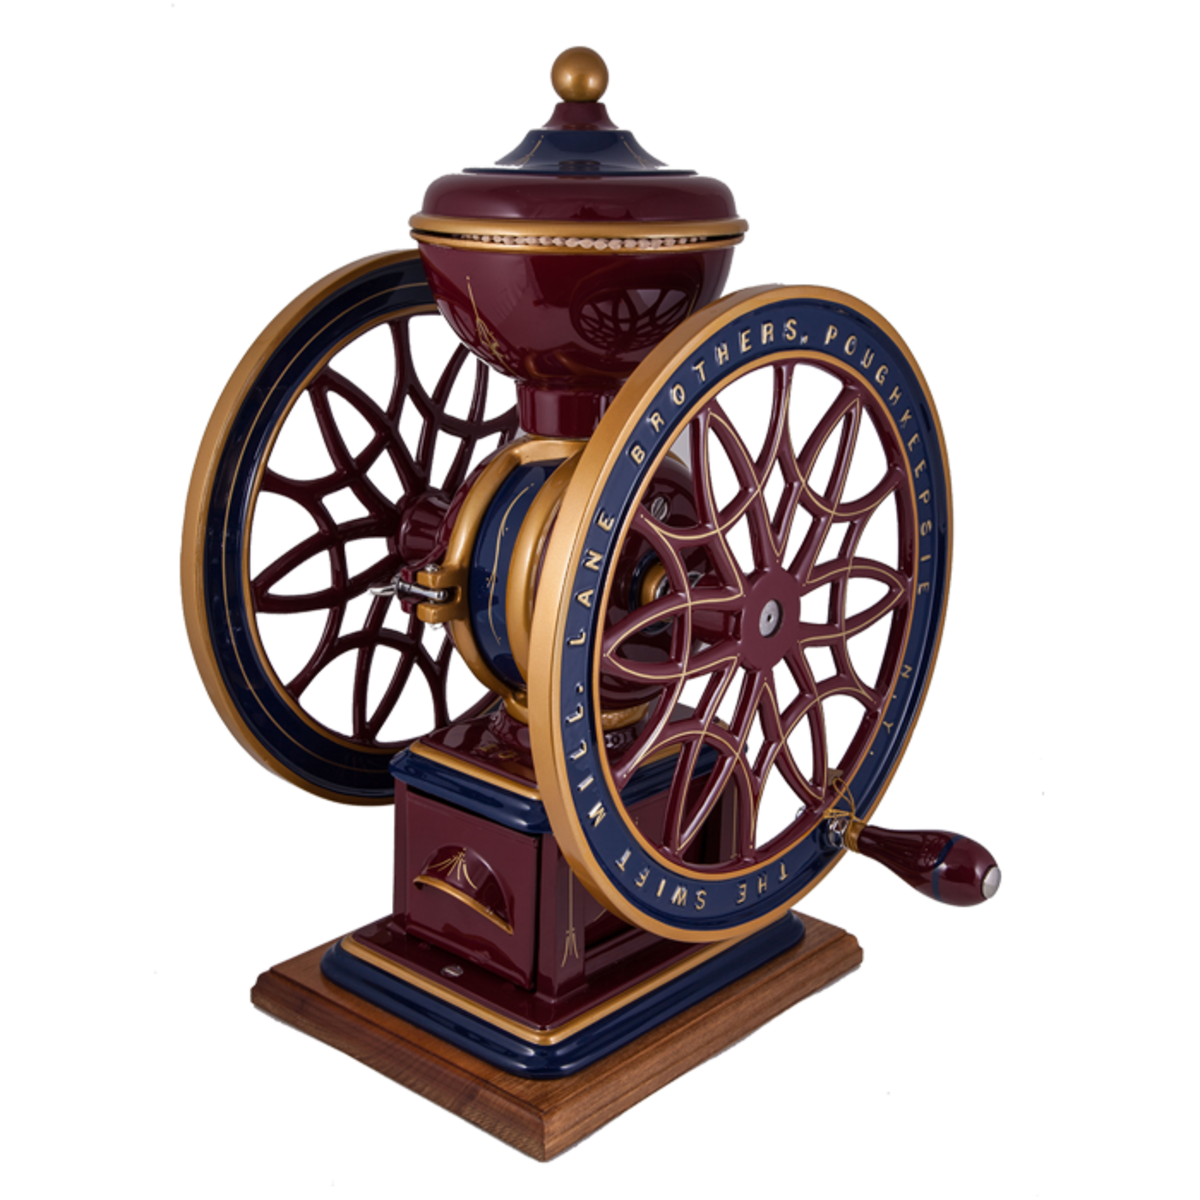 """Original, restored wheel grinder manufactured by The Swift Mill, Lane Brothers, USA, made circa 1890, hand painted red, blue and gold, 12"""" × 13"""" × 19"""", $8,500."""